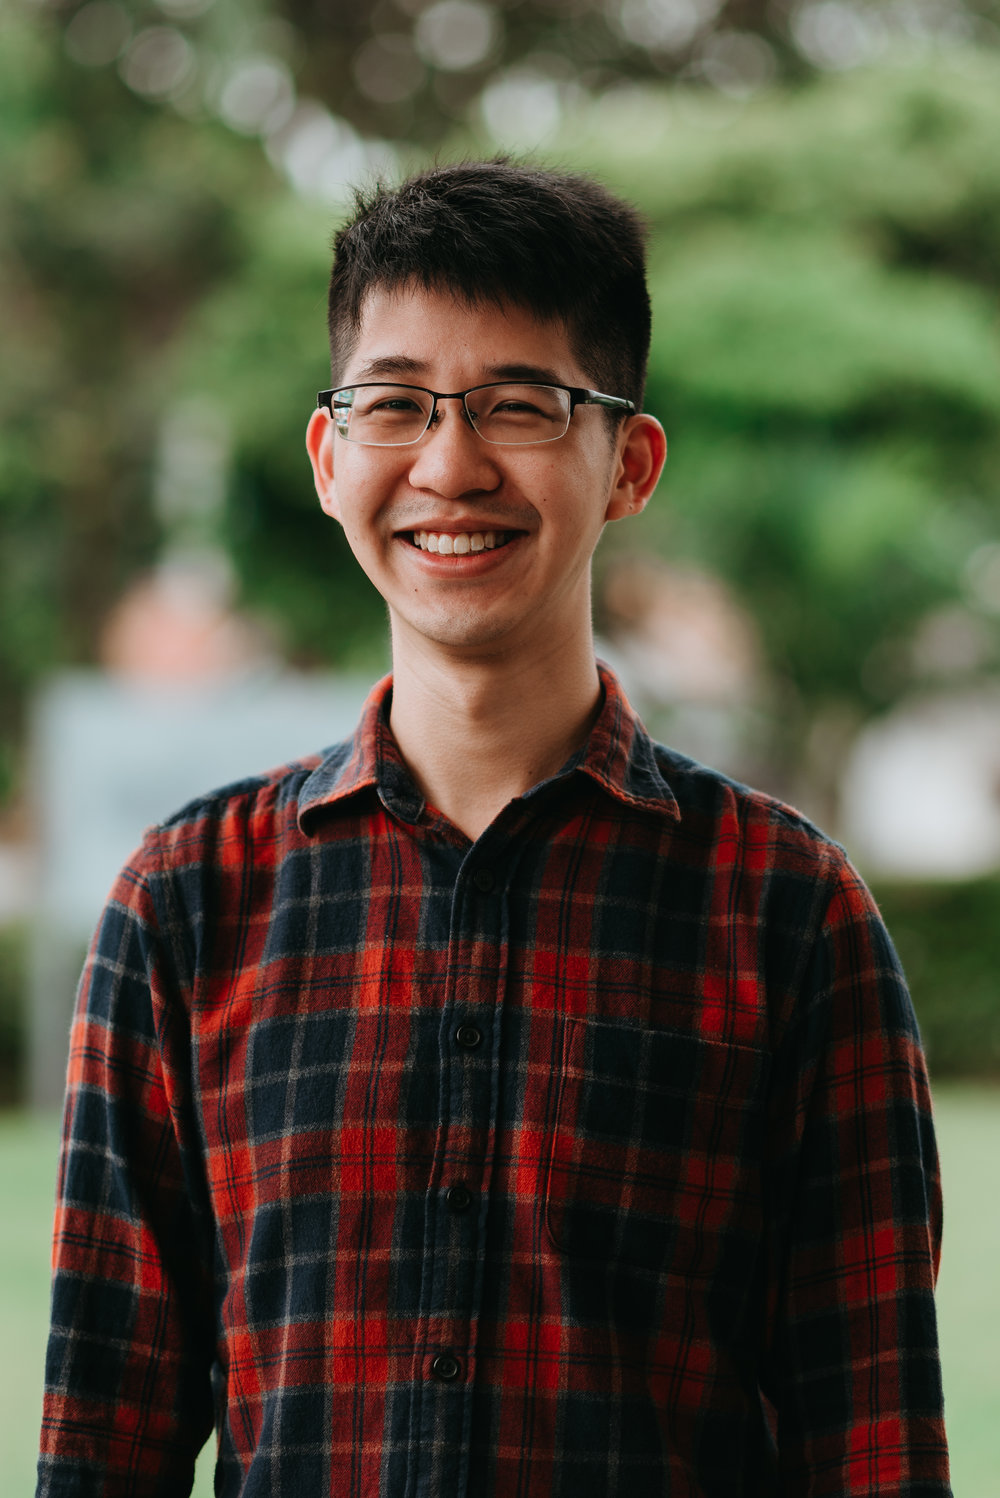 Sng Xu Jie  Ministry Assistant Communication & Outreach